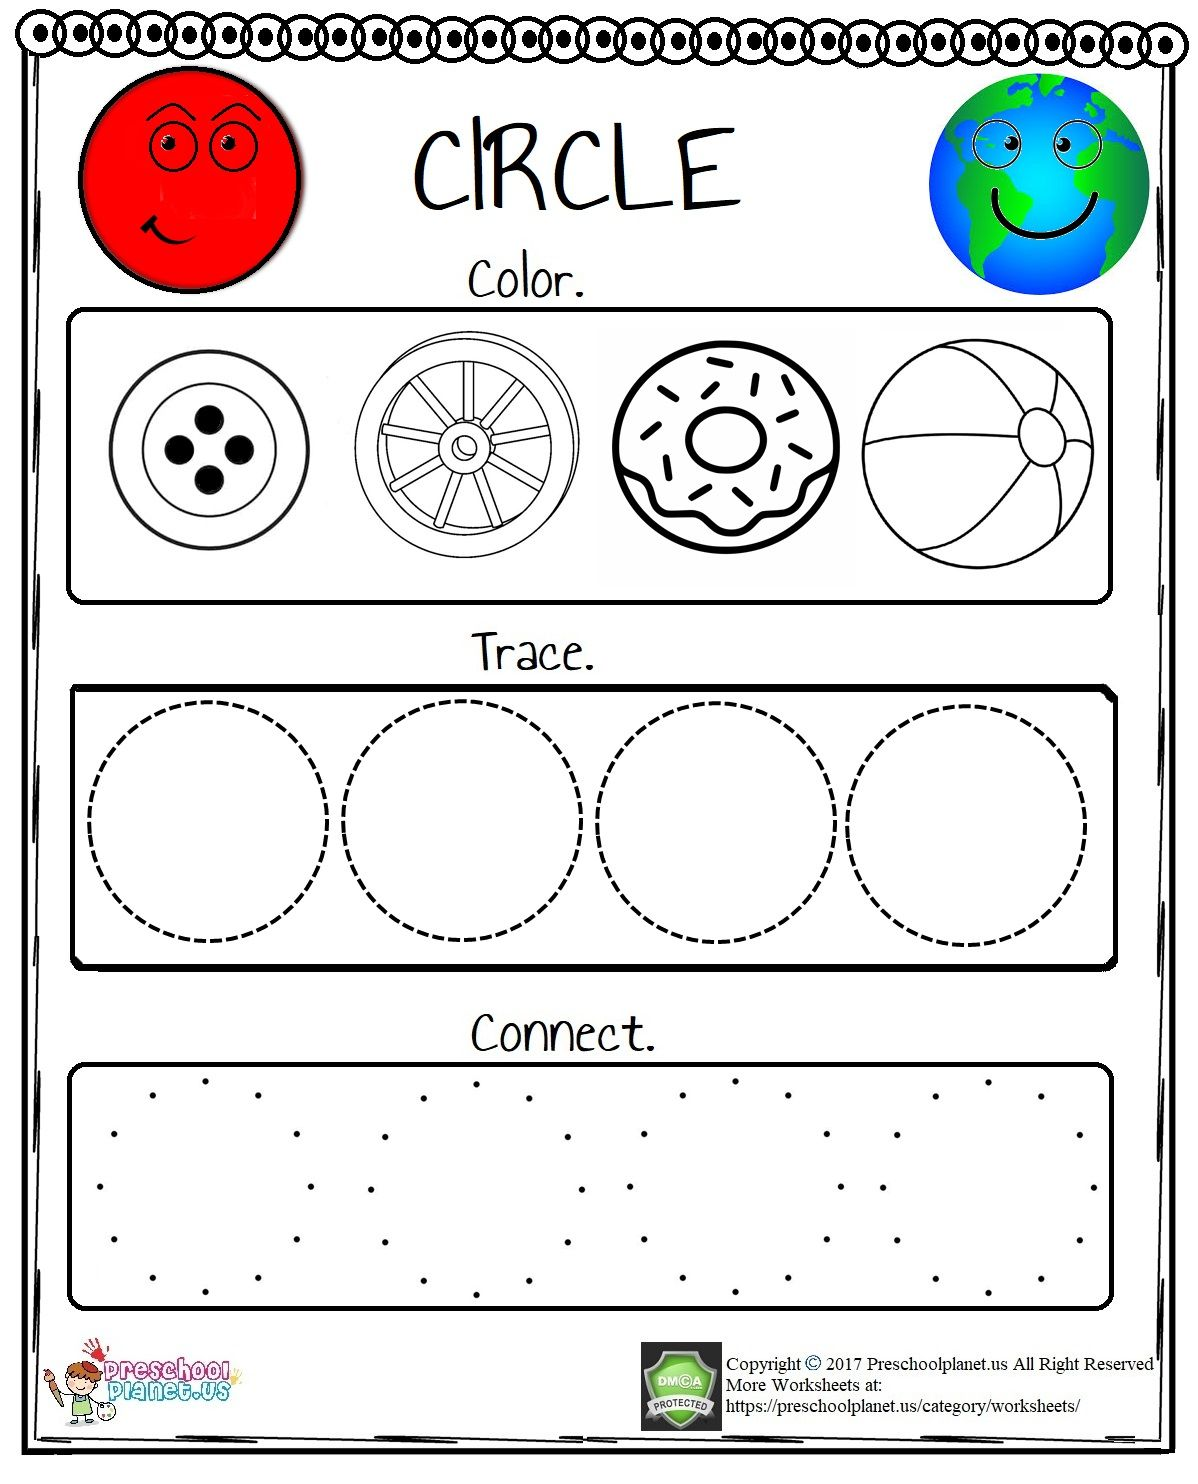 We Prepared A Circle Worksheet For Kindergarten